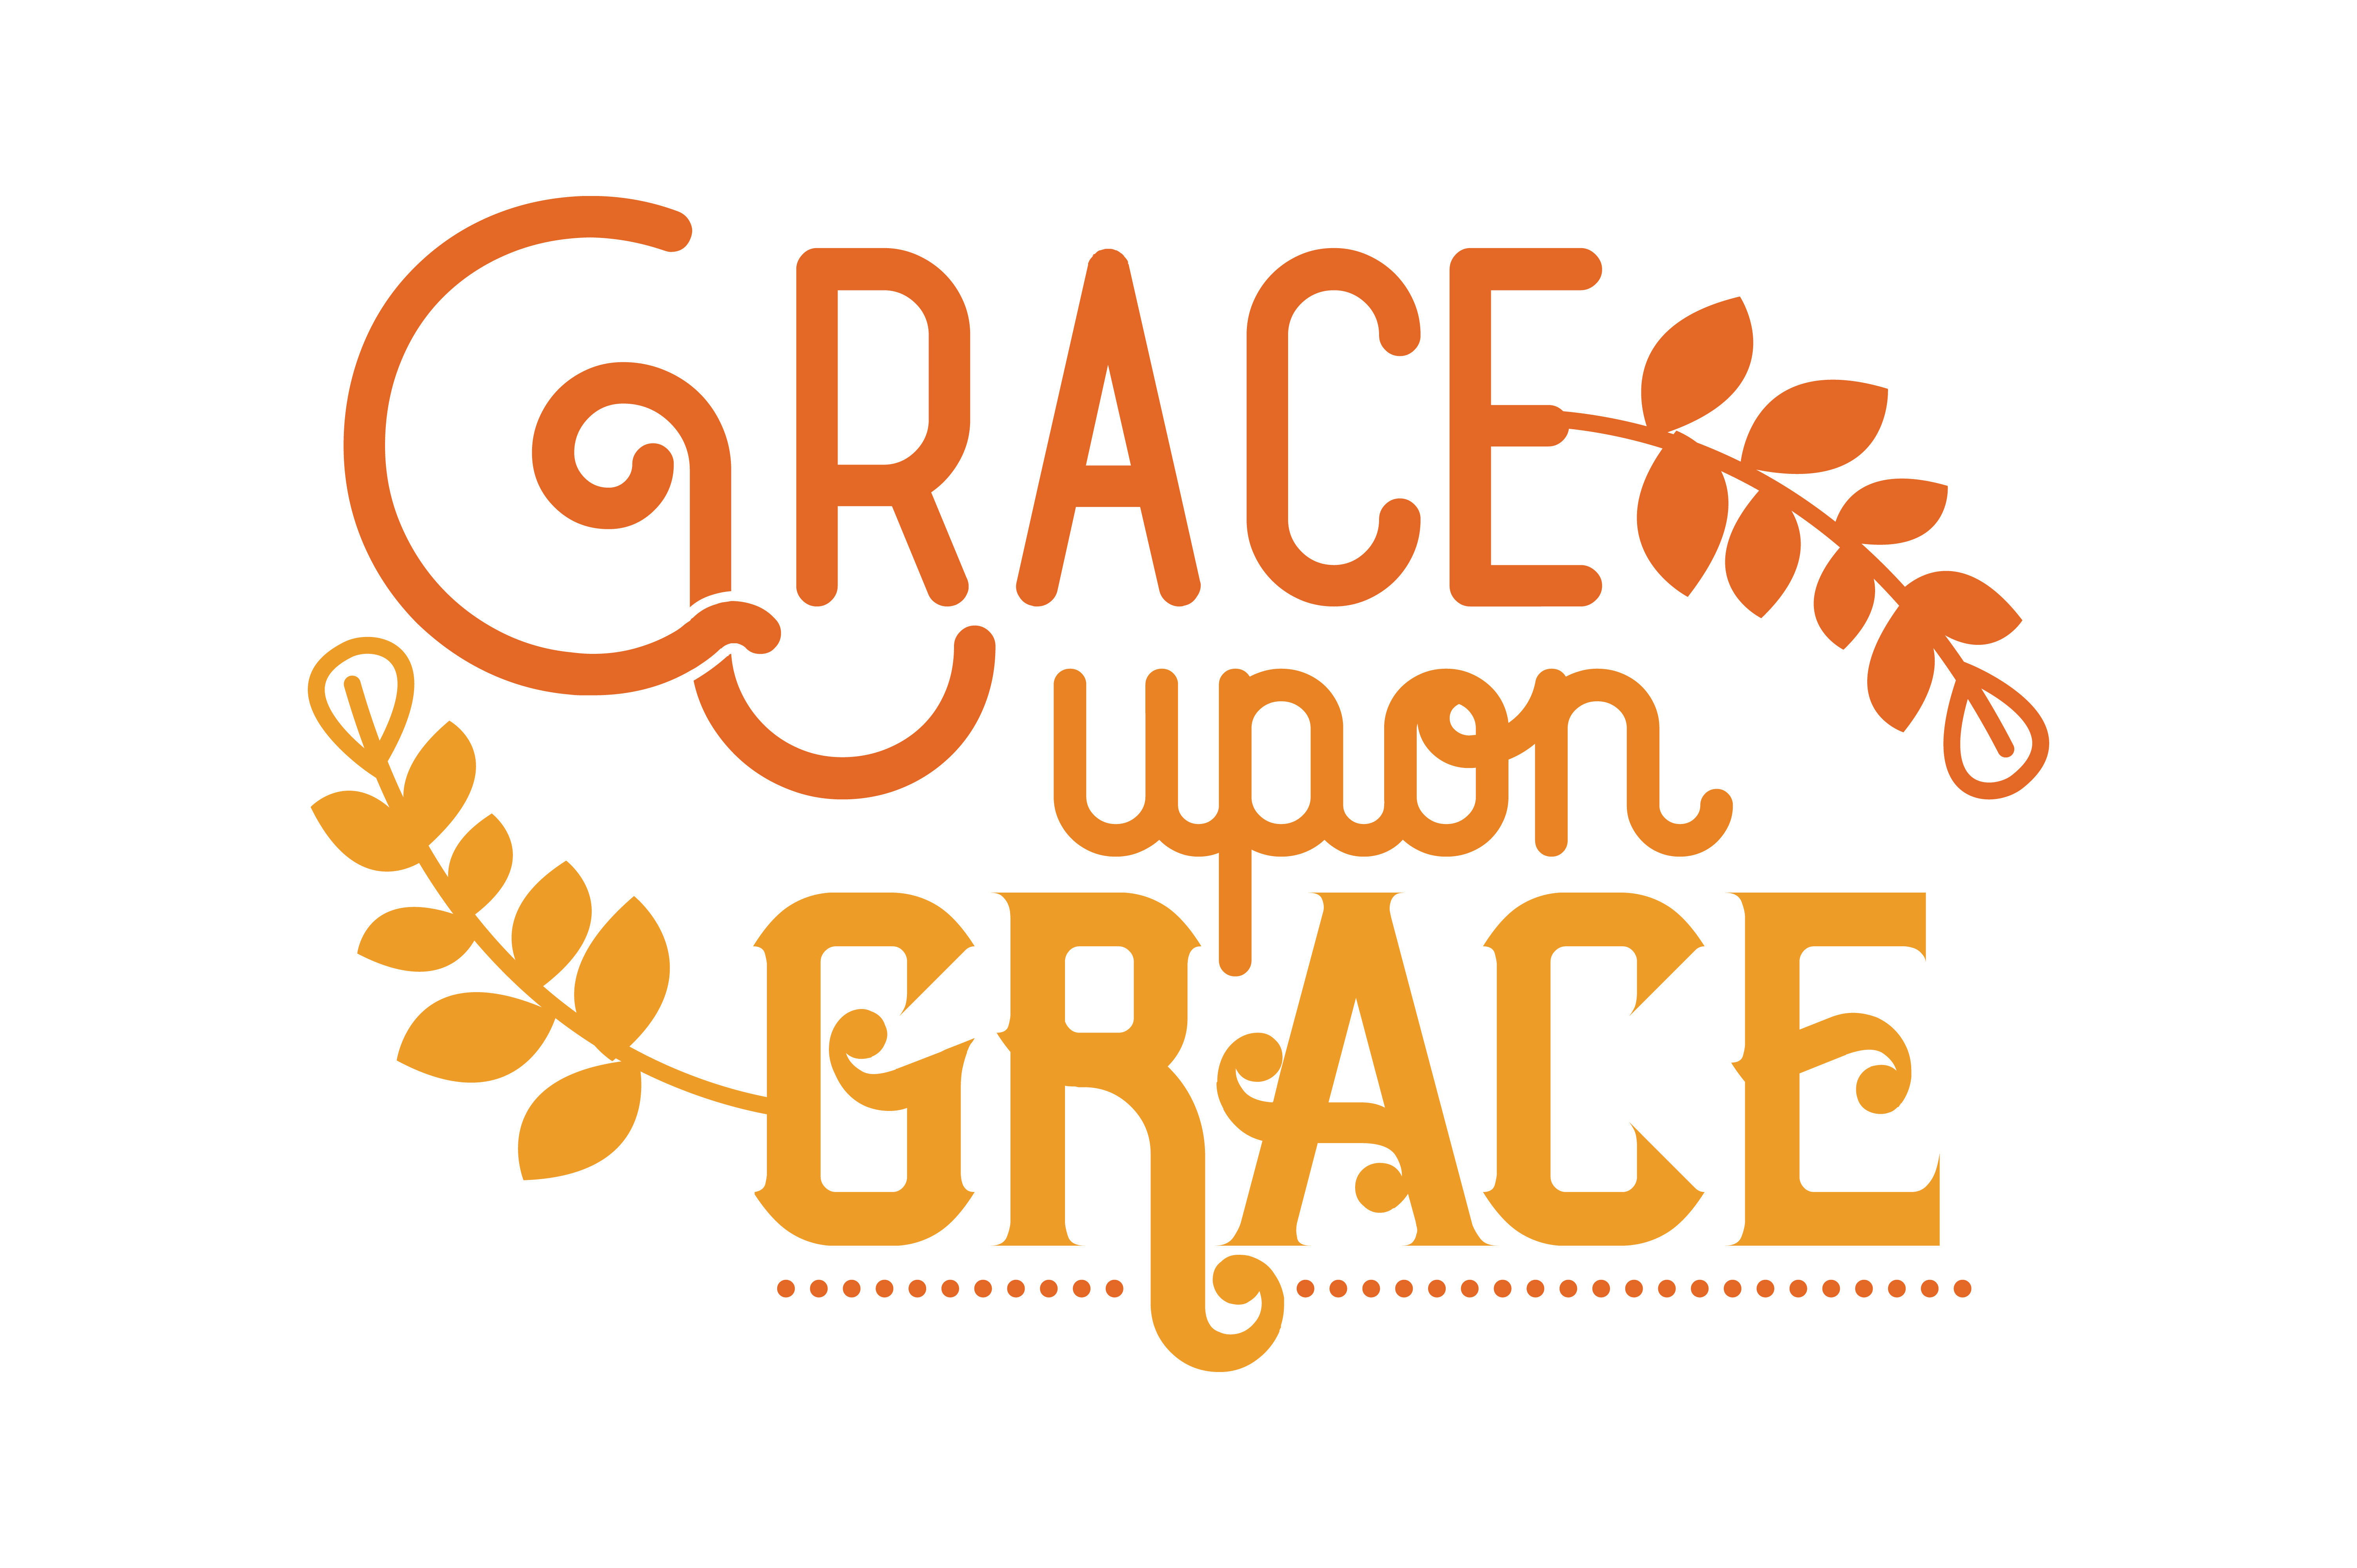 Grace Upon Grace Svg Cut Quote Graphic By Thelucky Creative Fabrica